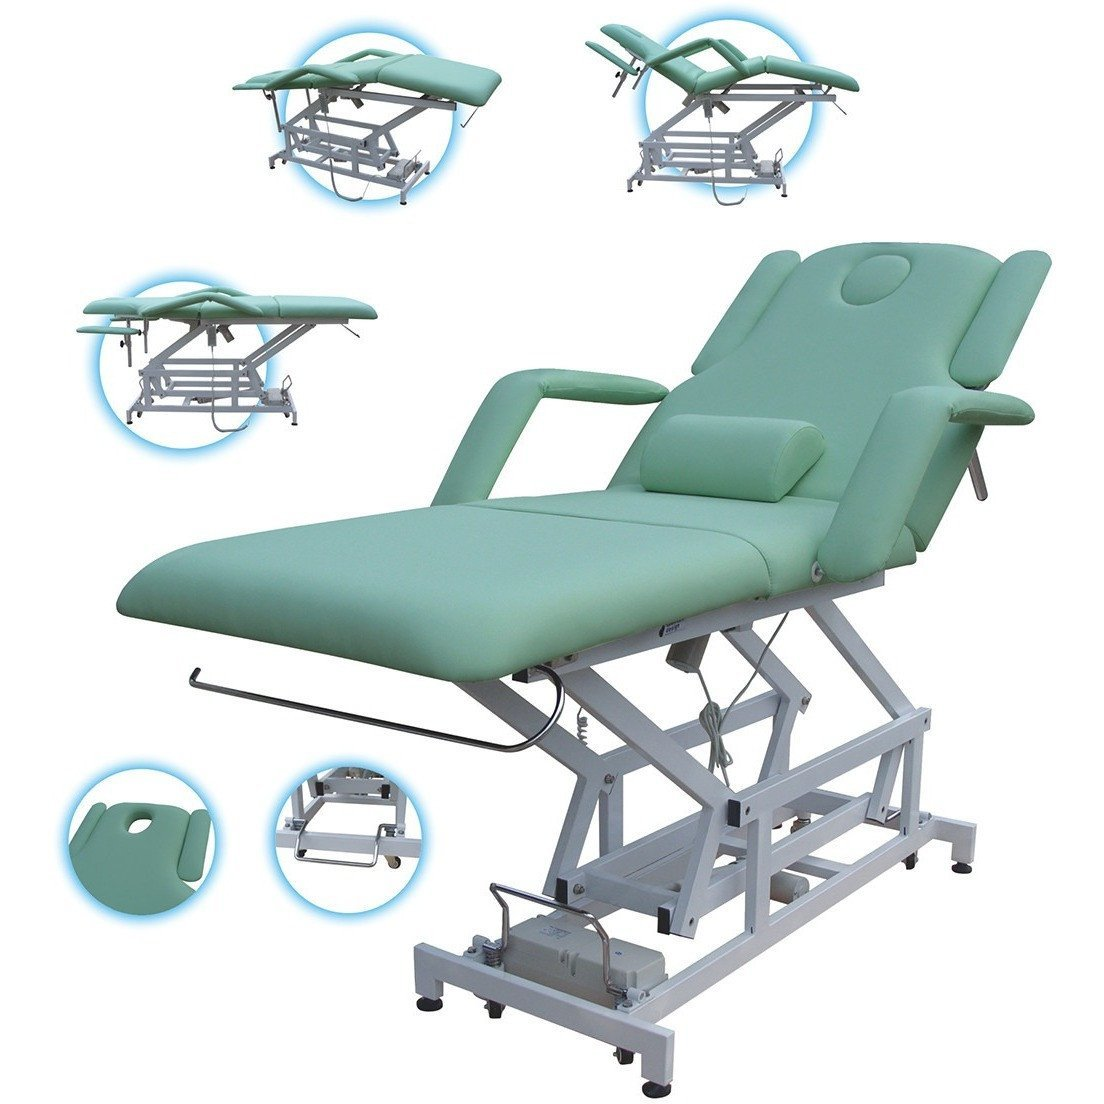 Essential Spa Equipment - Electric Massage Bed Superior